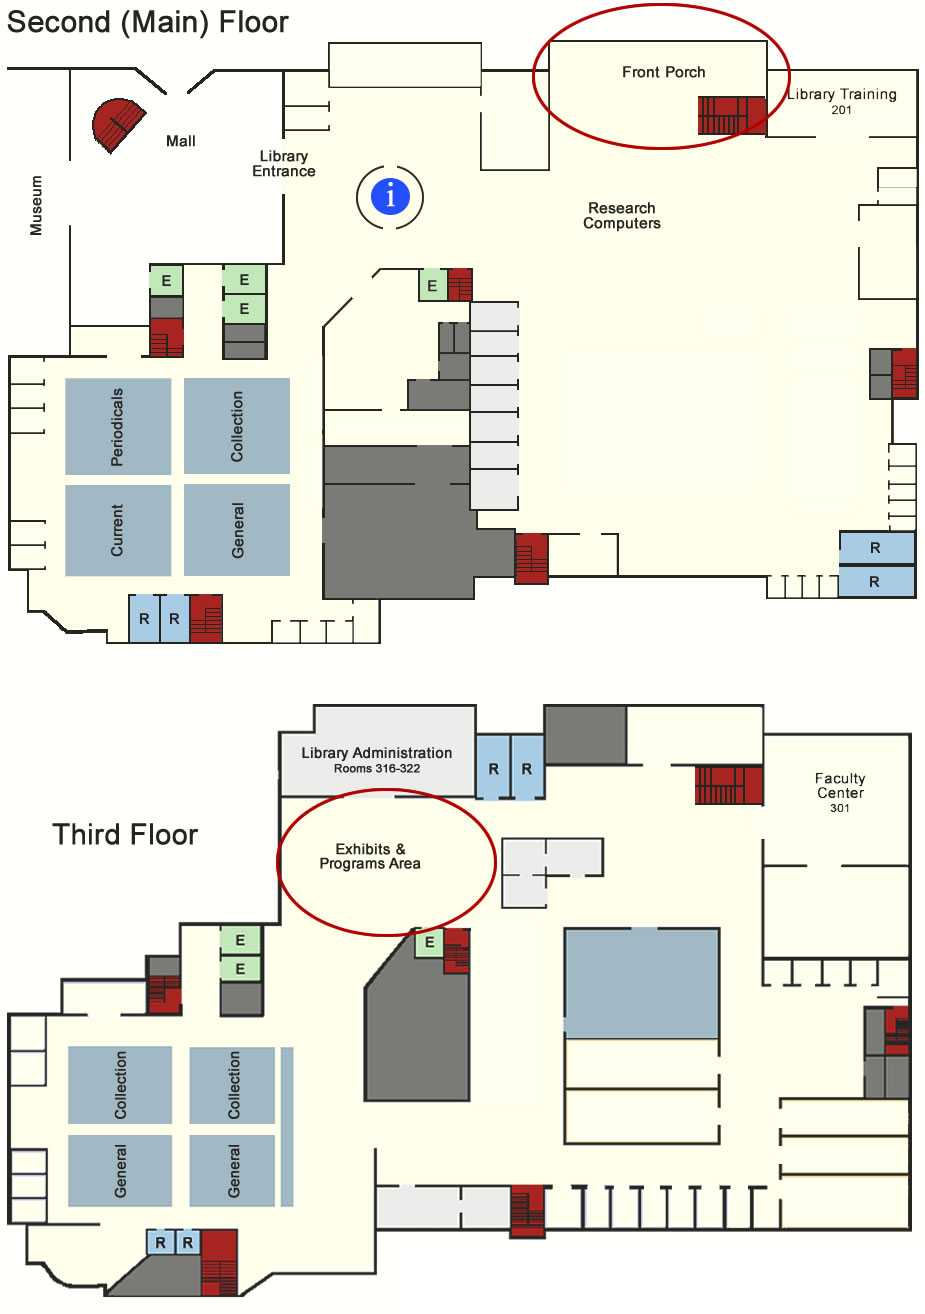 Library Floor Map - Main Exhibit Areas